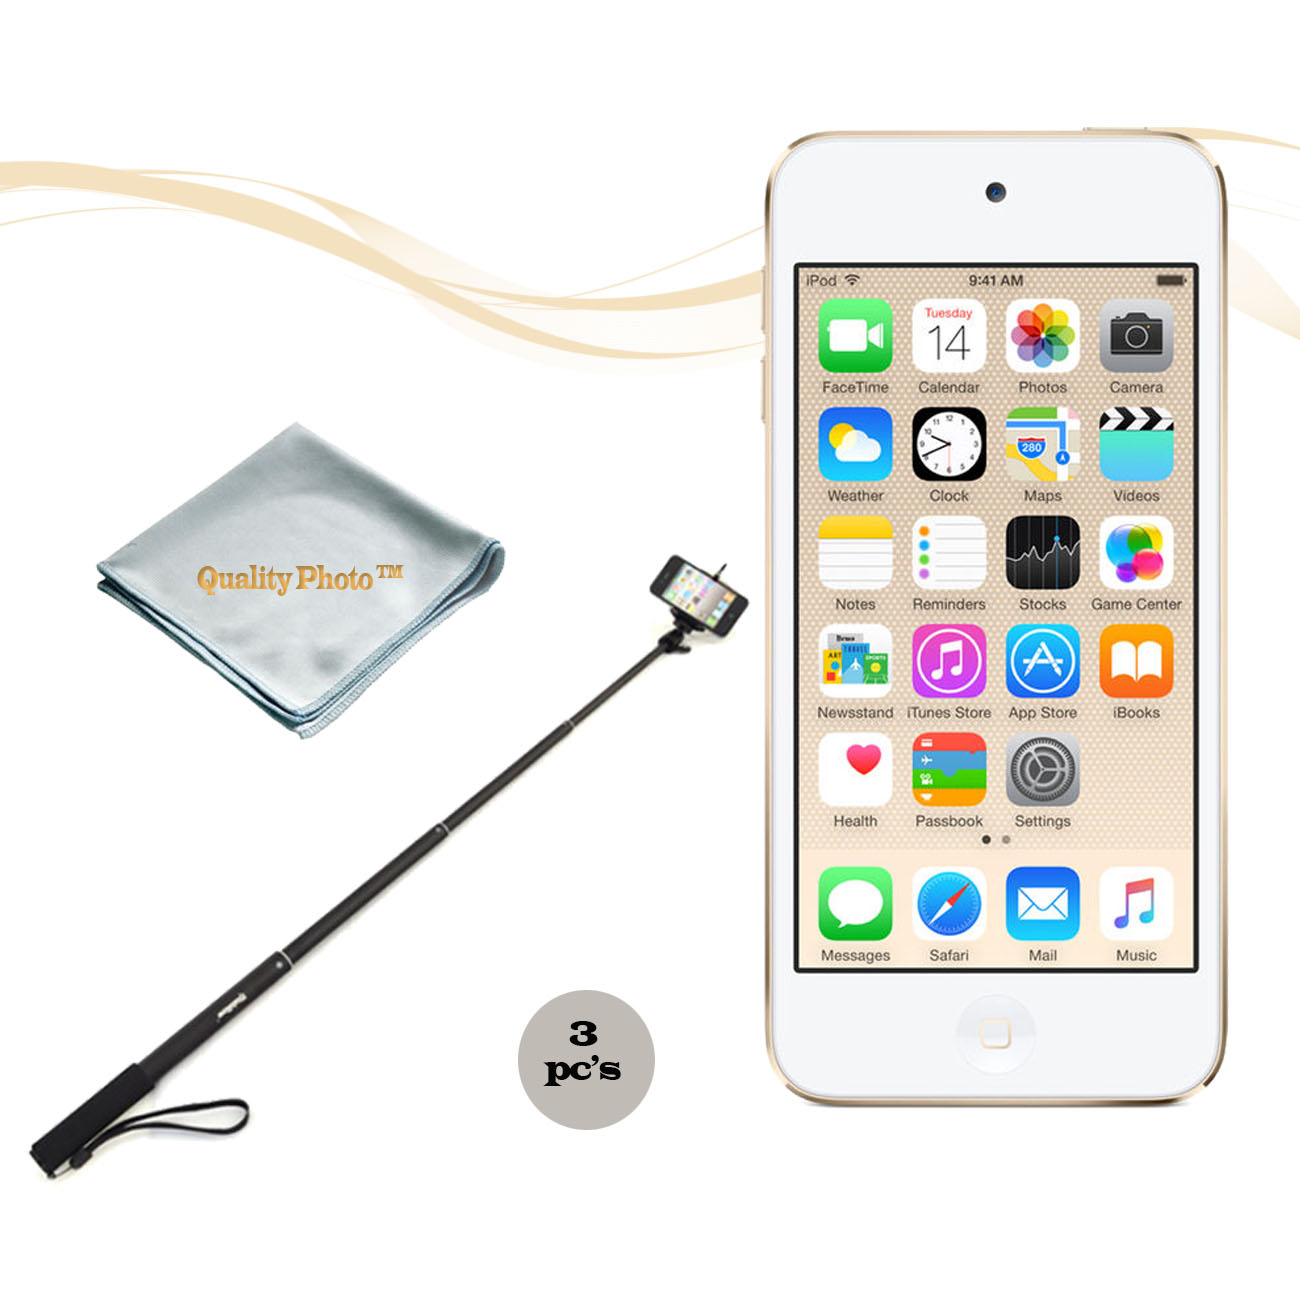 Apple Ipod Touch 16GB Gold (6th Generation) with a Istabilizer Istmp01 Monopod and Quality Photo Microfiber Cloth